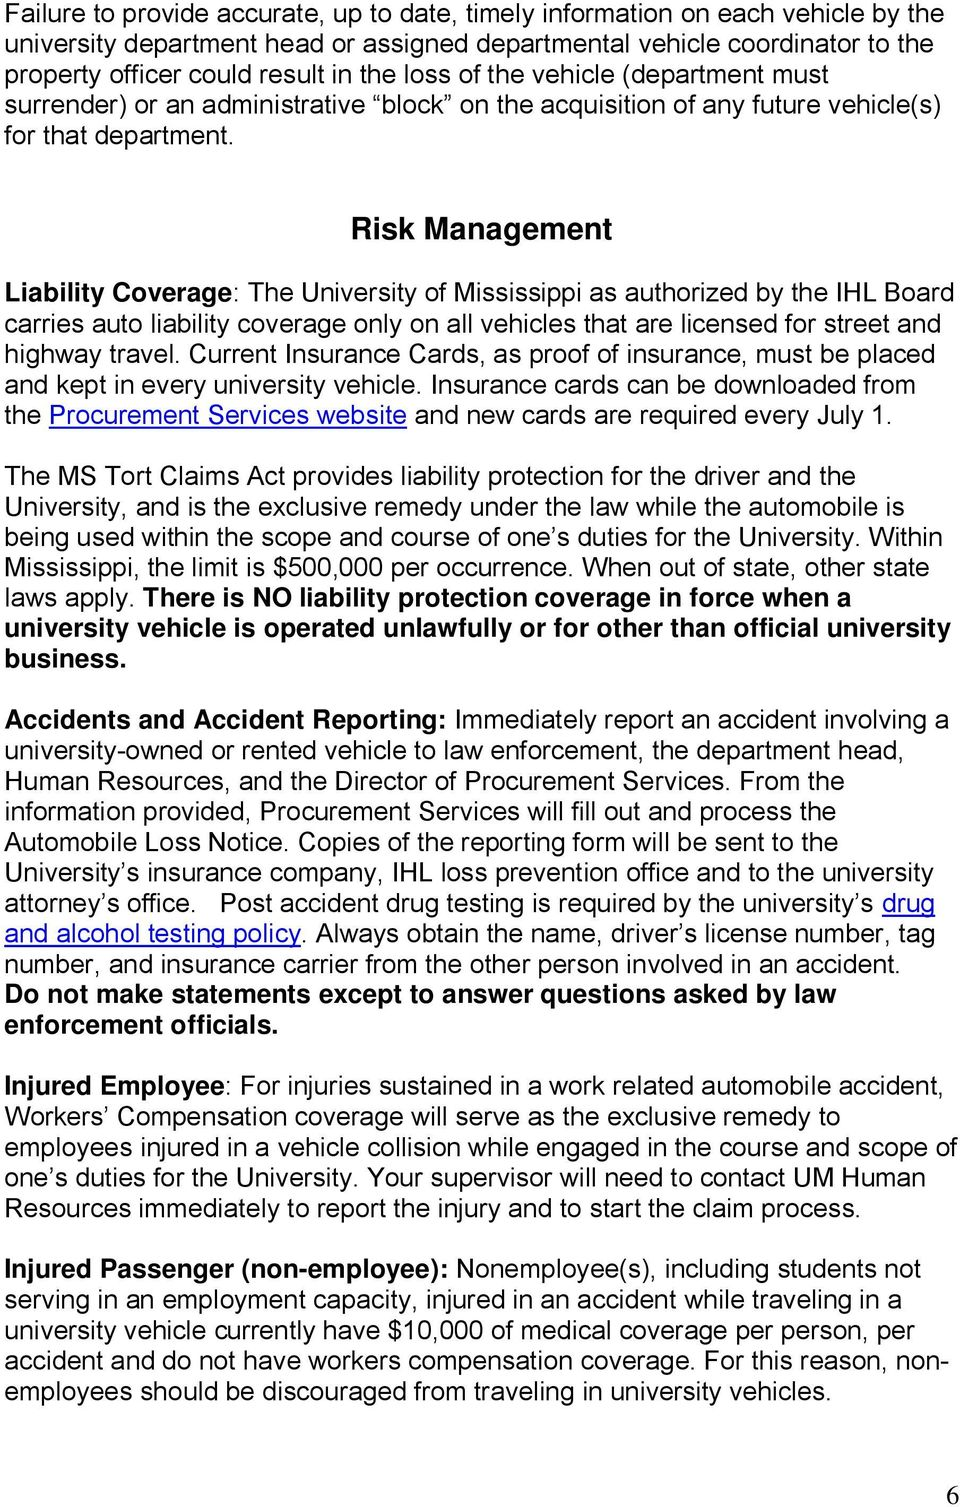 Risk Management Liability Coverage: The University of Mississippi as authorized by the IHL Board carries auto liability coverage only on all vehicles that are licensed for street and highway travel.